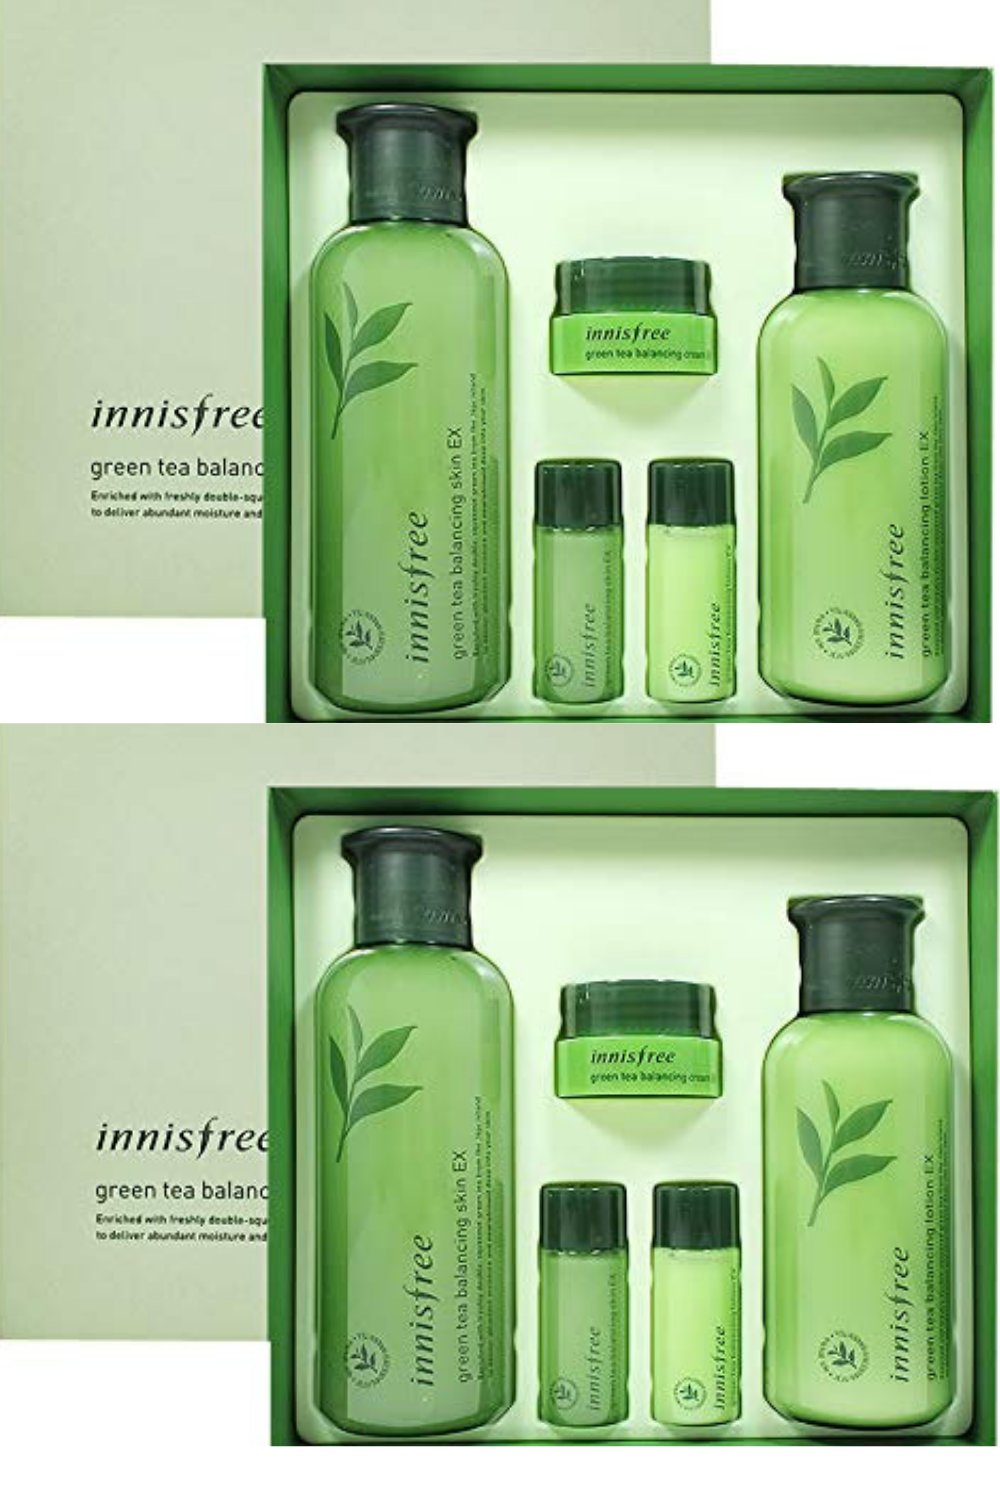 Innisfree Green Tea Balancing Skin Care Set Skincare Set Green Tea Skin Care Face Products Skincare